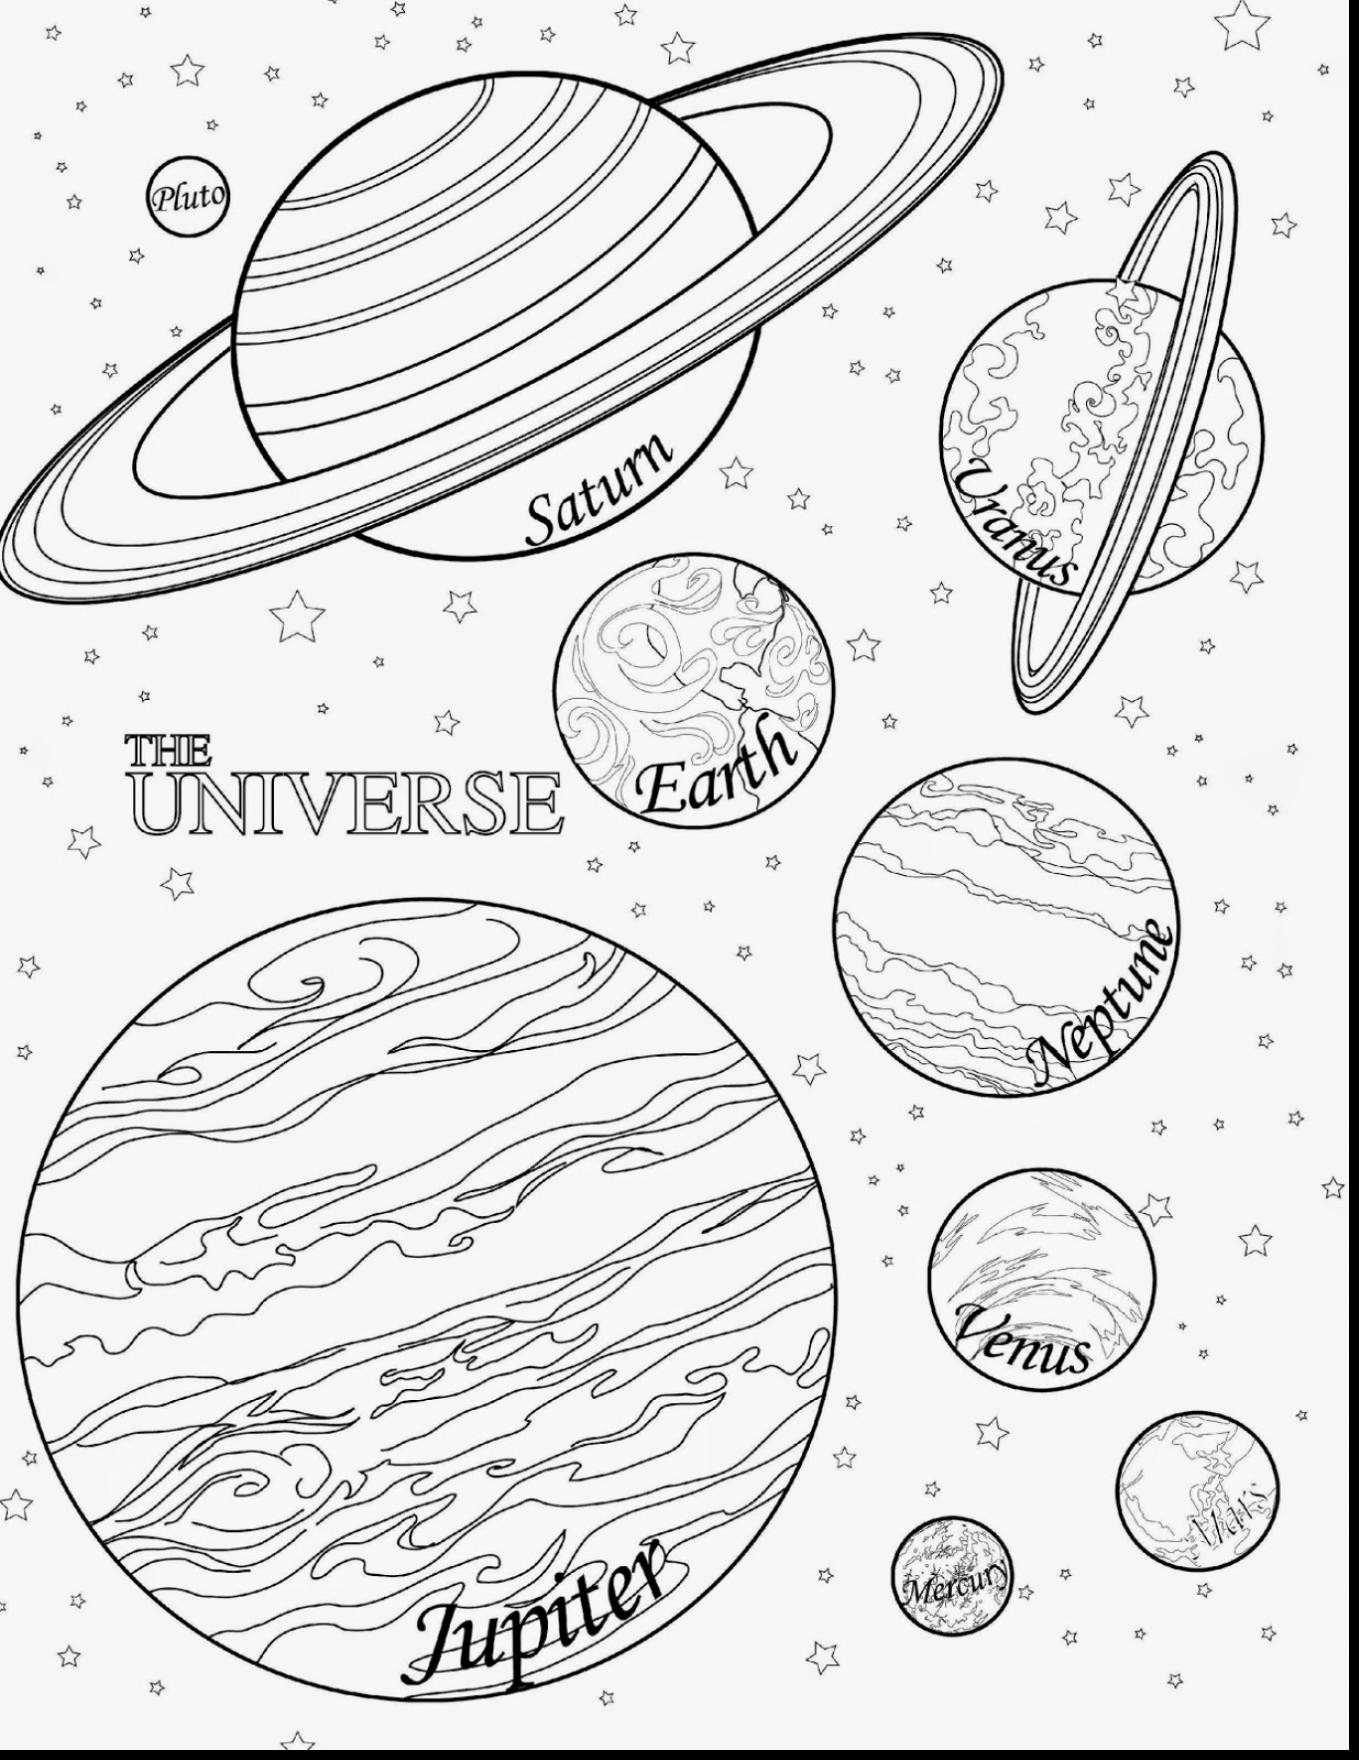 coloring planets solar system drawing solar system planets drawing at getdrawings free download coloring drawing planets solar system